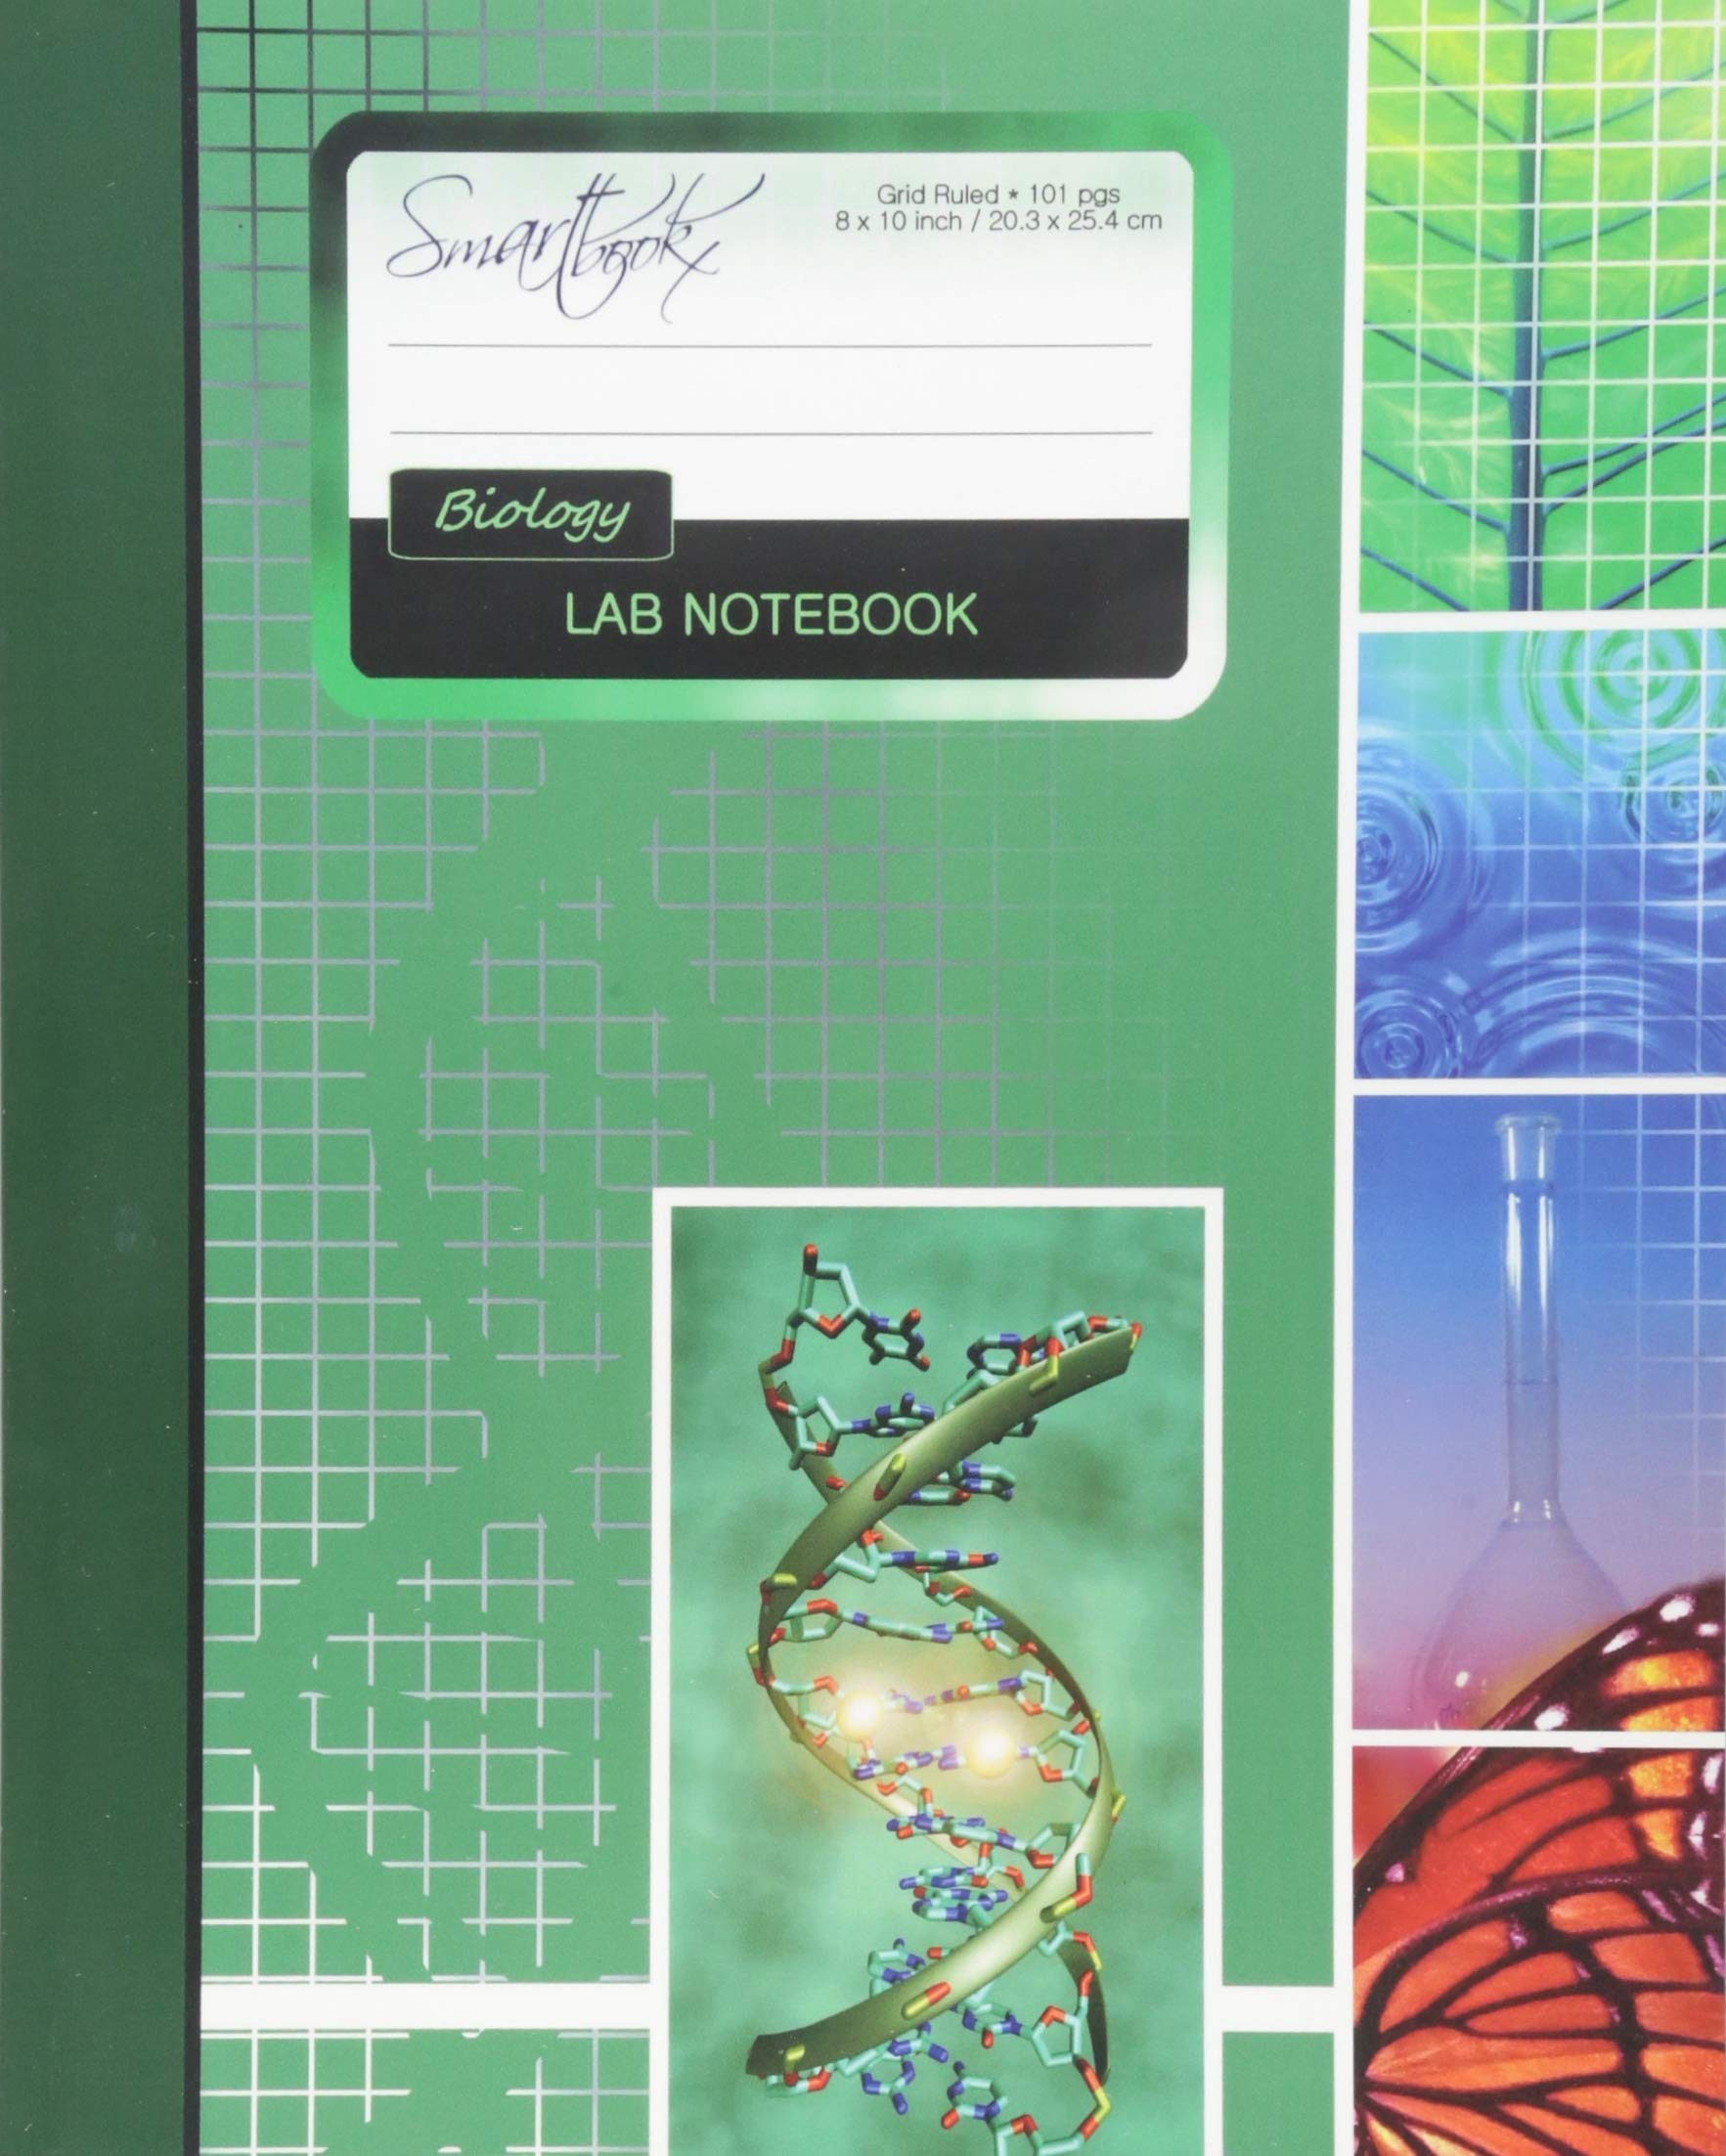 Lab Notebook Biology Laboratory Notebook For Science Student Research College 101 Pages Perfect Bound 8 X 10 Inch Composition Books Specialist Scientific Smart Bookx 9781517787066 Amazon Com Books